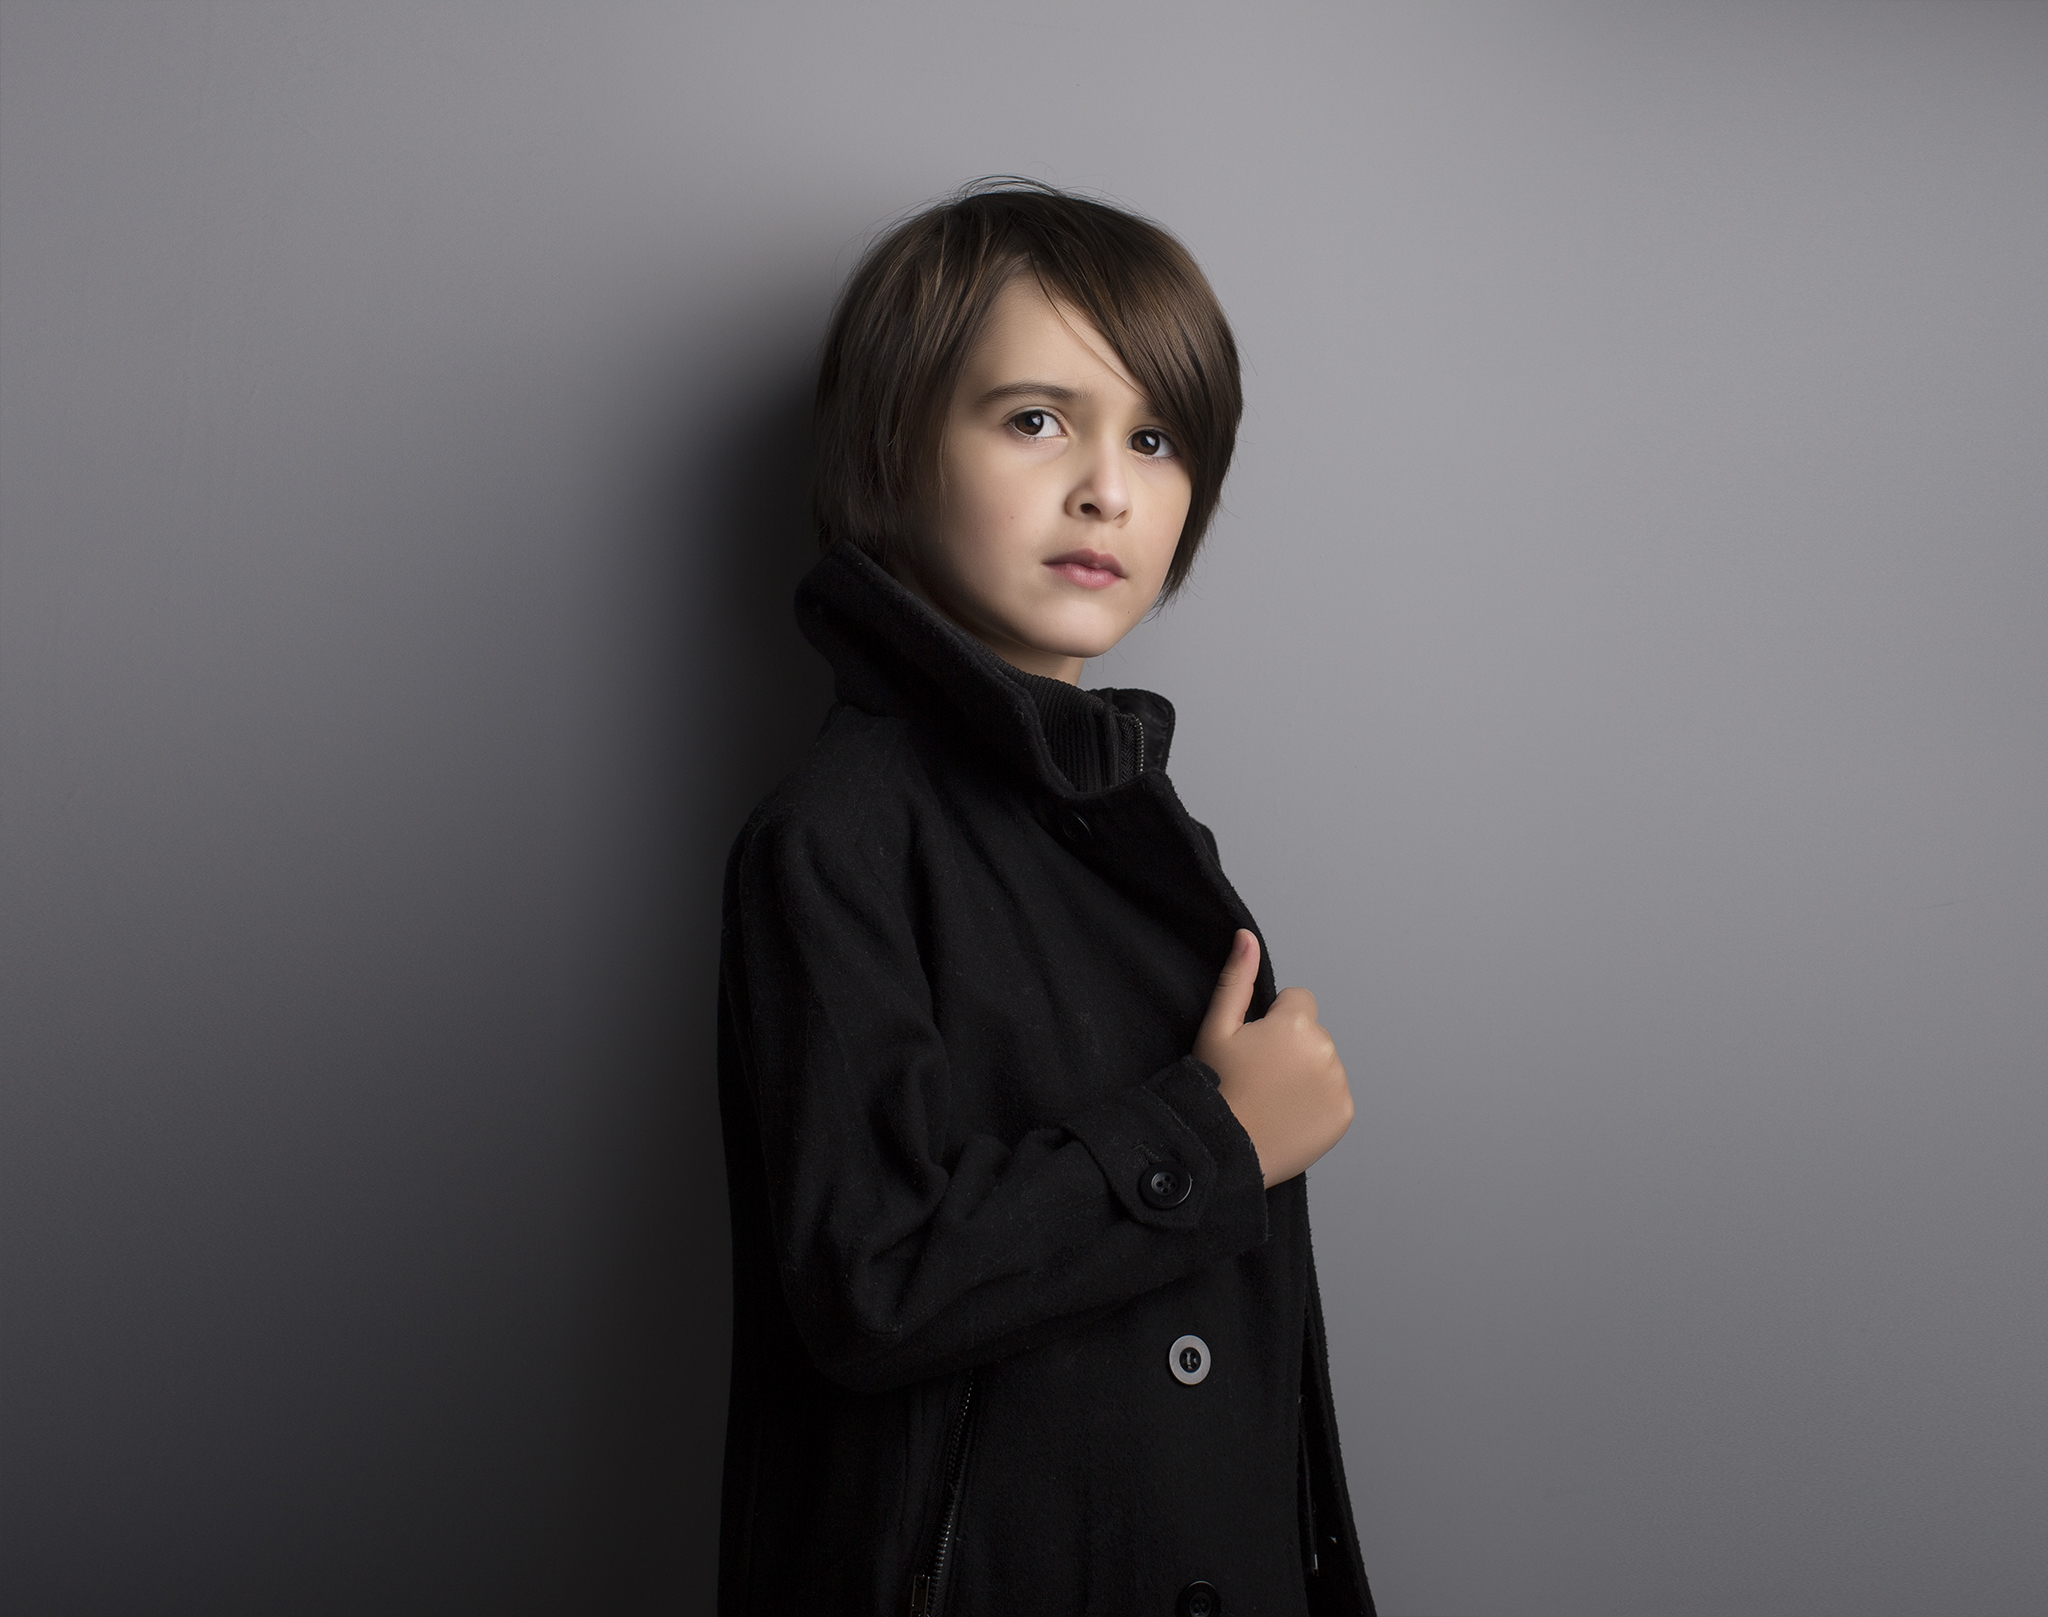 elizabethgphotography_childrens_fineart_kingslangley_hertfordshire_model_Levi_spence1.jpg